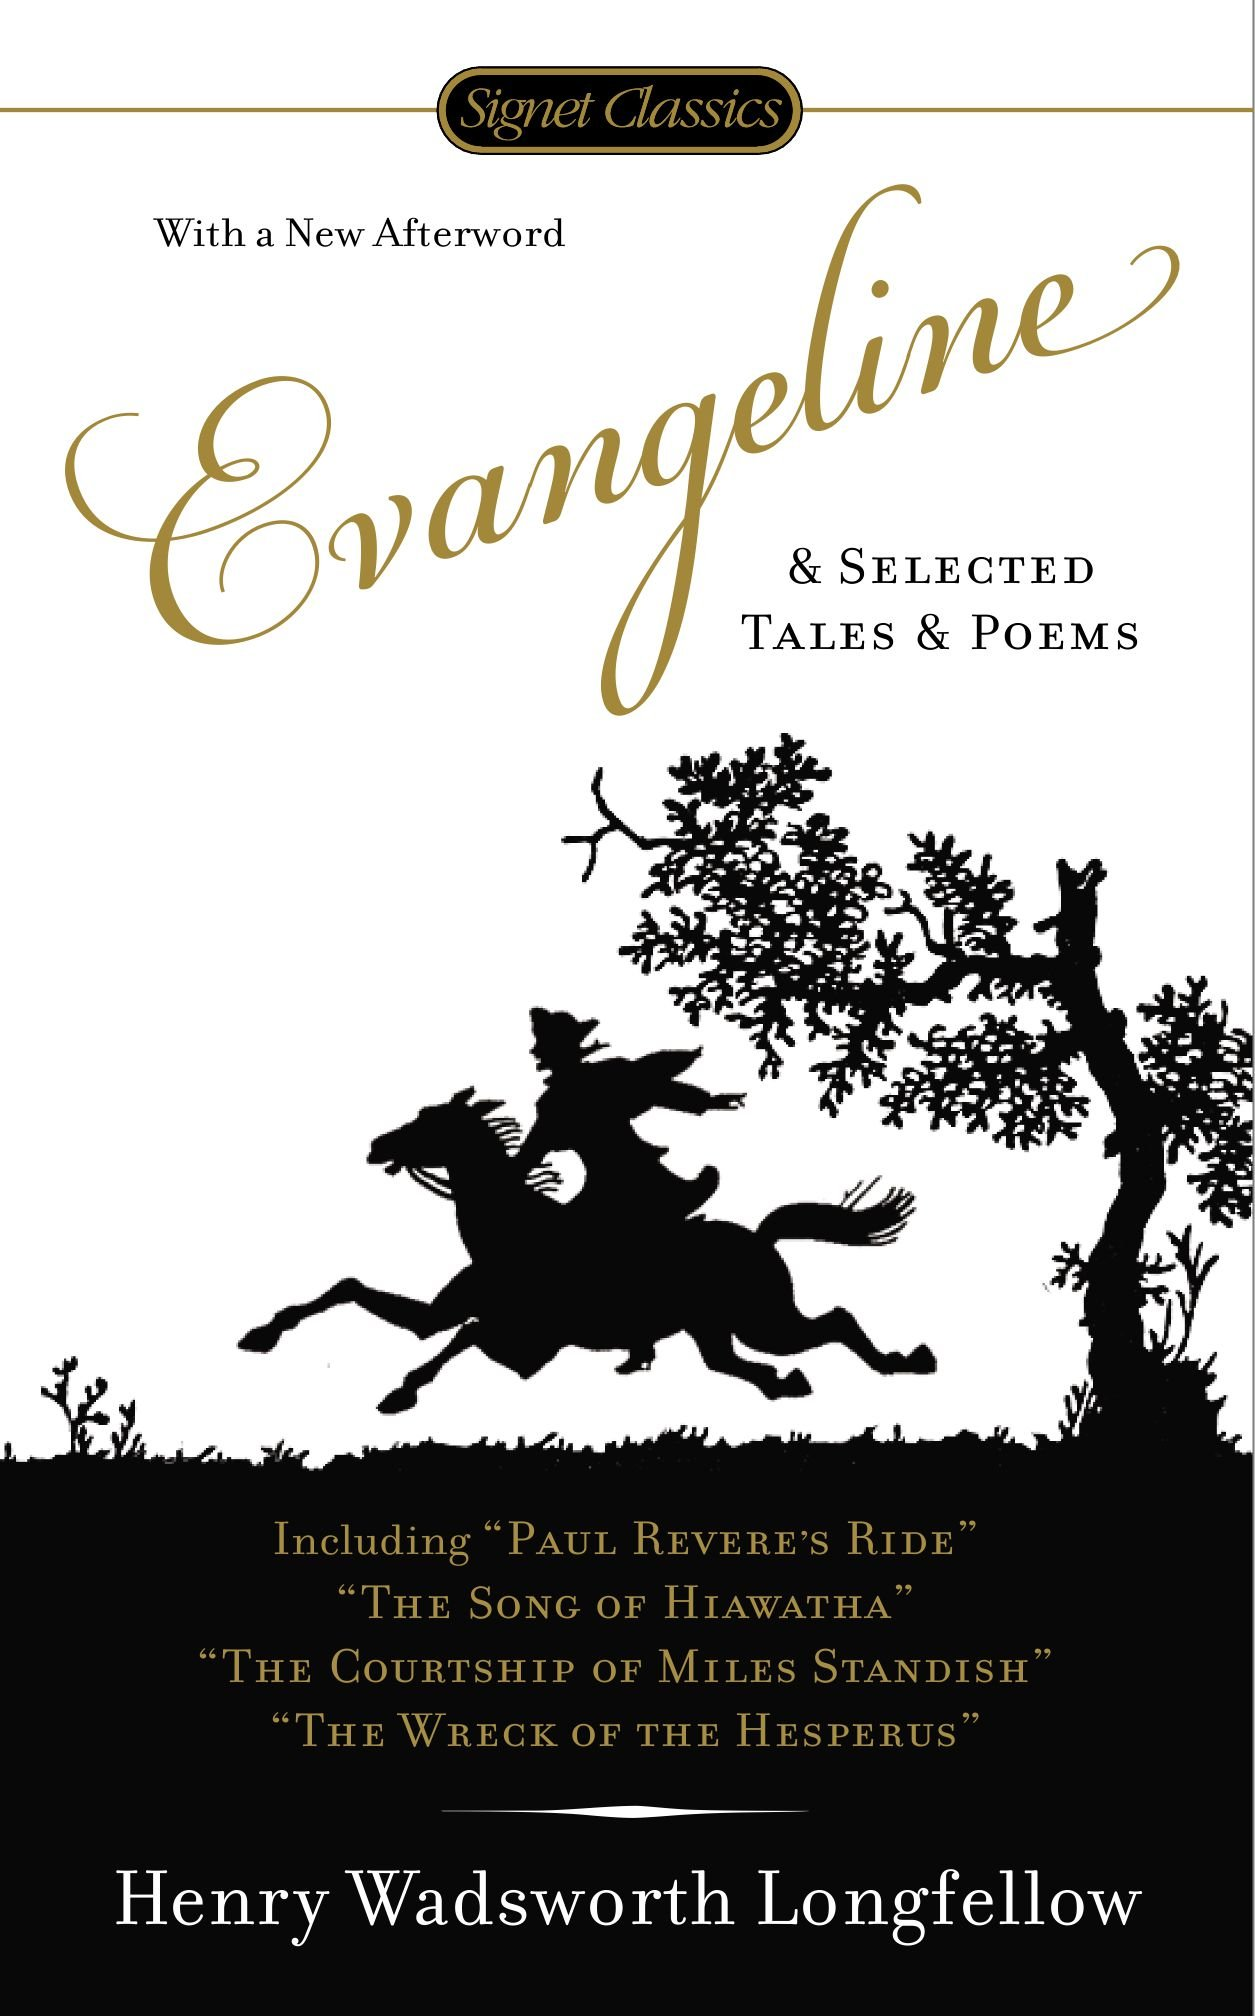 Evangeline And Selected Tales Poems Henry Wadsworth Longfellow Edward M Cifelli Horace Gregory Christoph Irmscher 9780451418548 Amazon Books